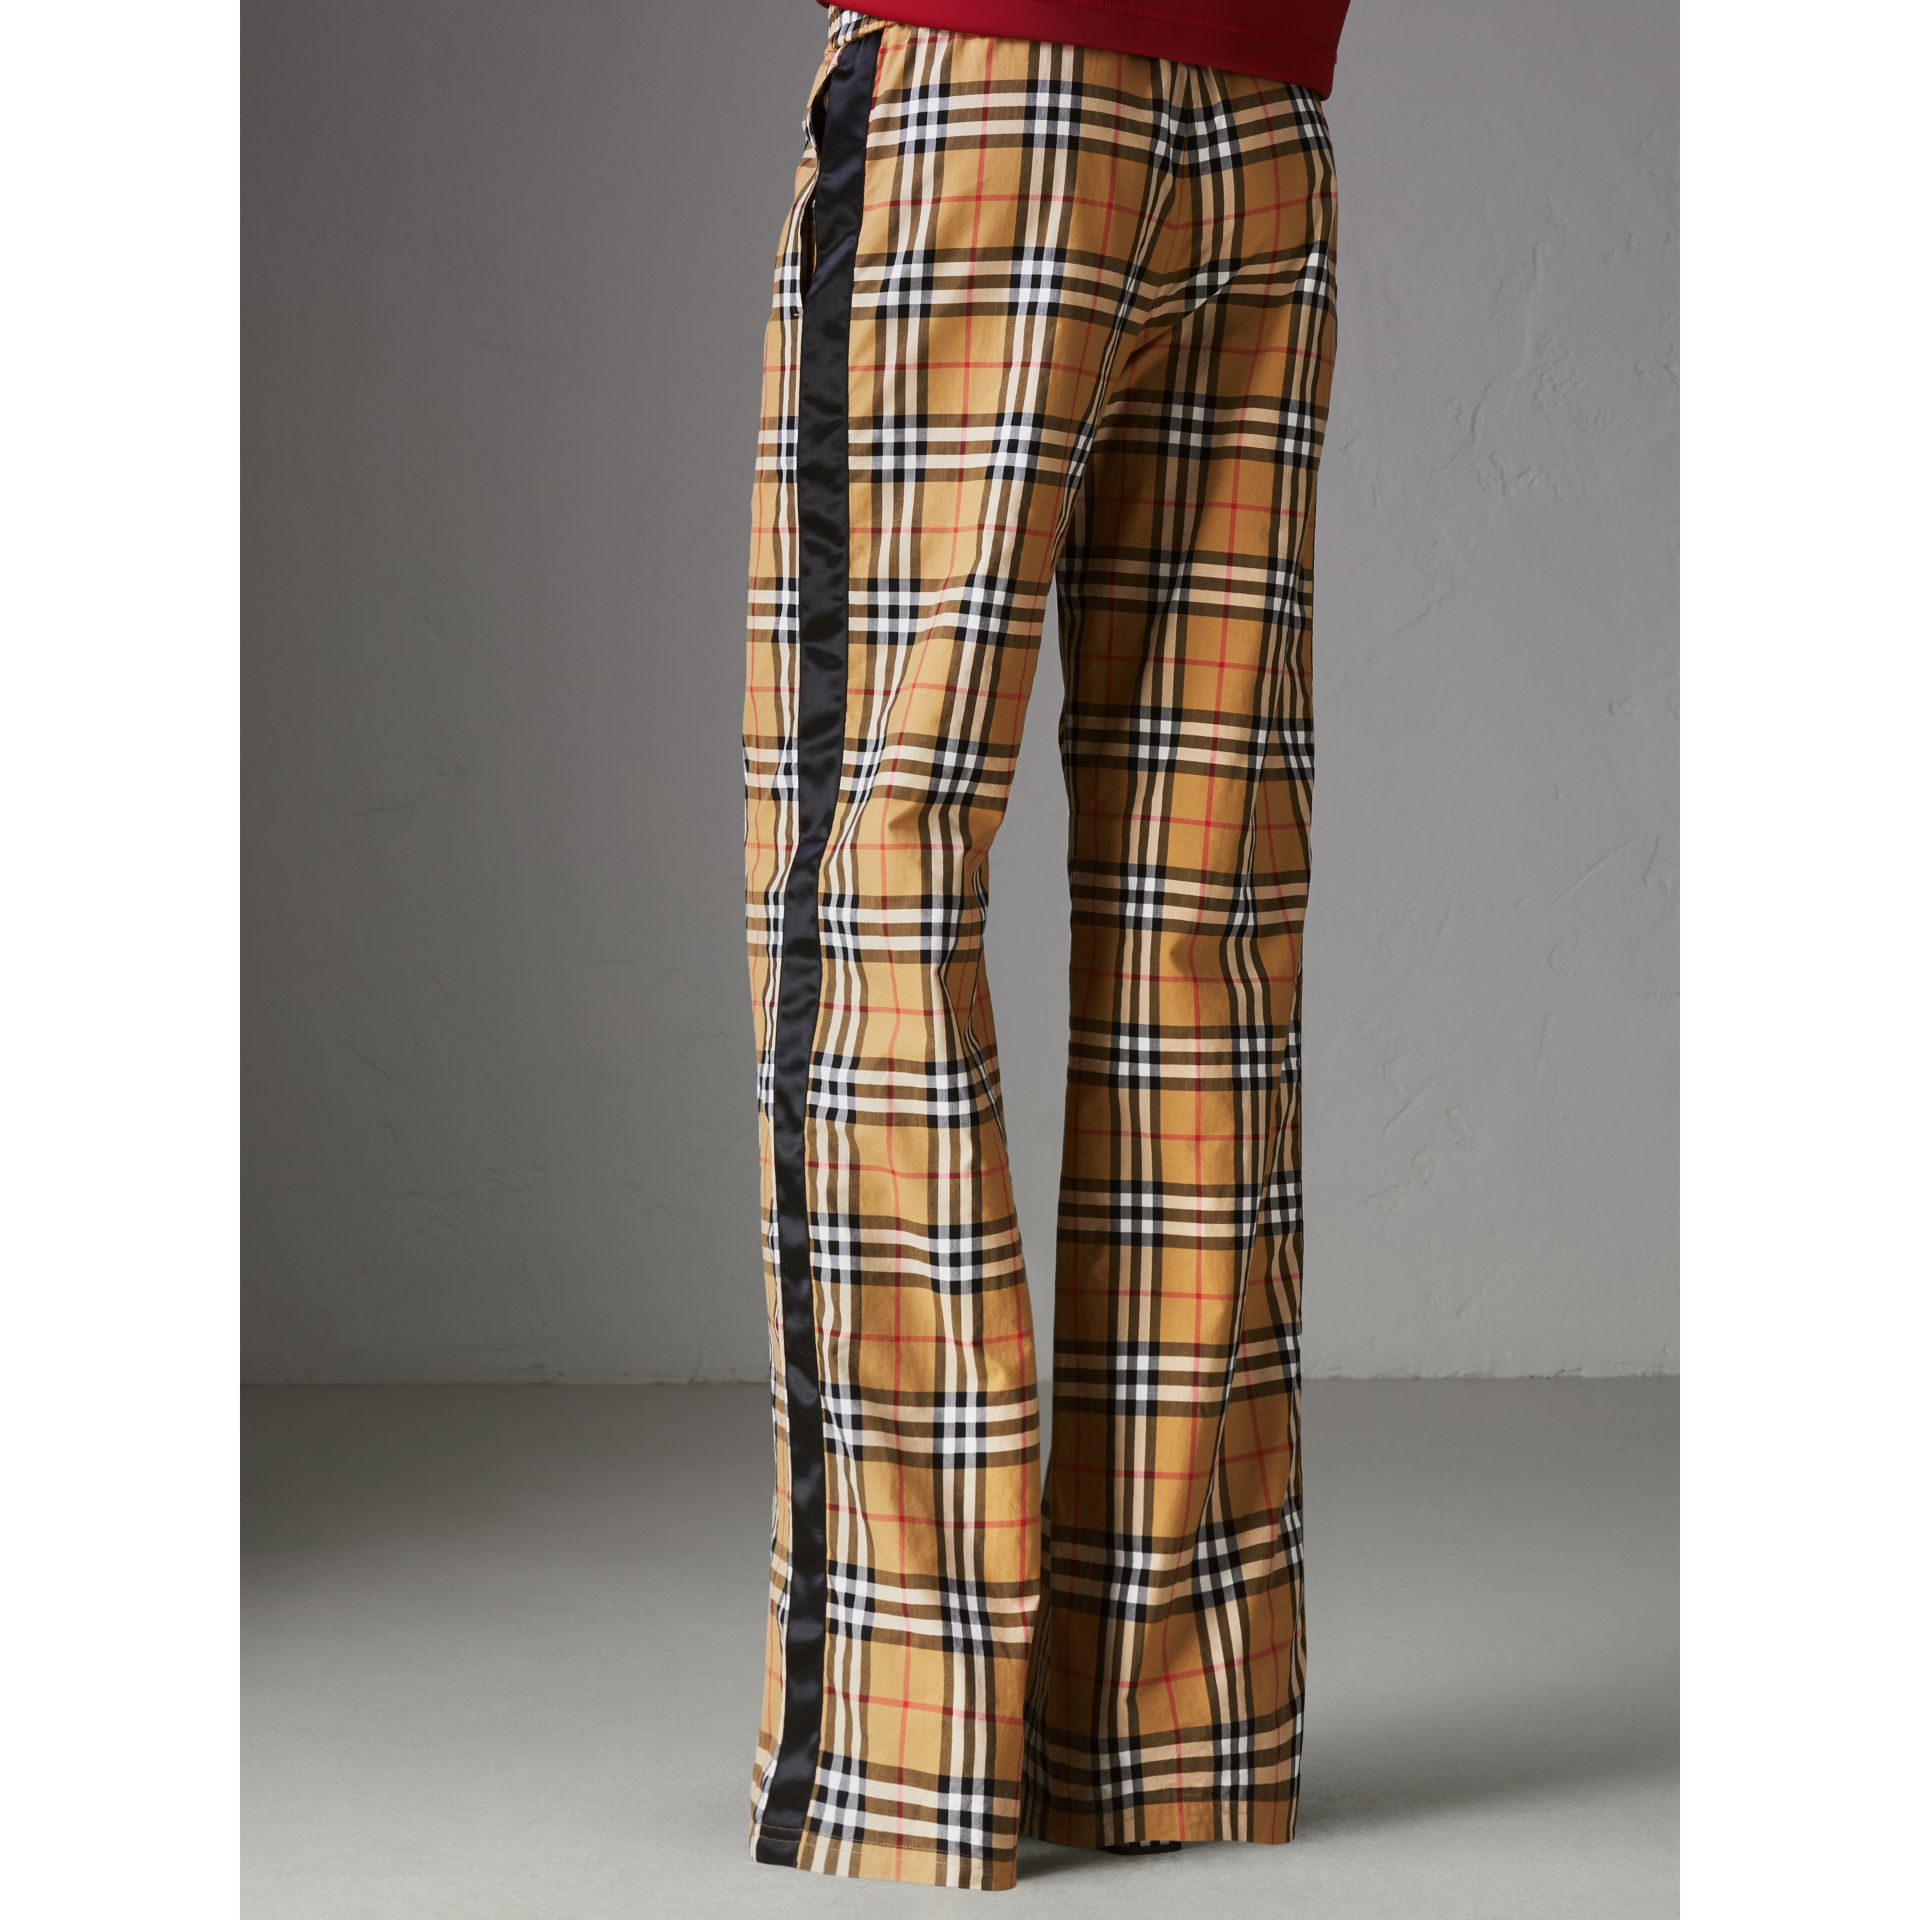 Pantalon à motif Vintage check avec cordon de serrage (Jaune Antique) - Femme | Burberry - photo de la galerie 2